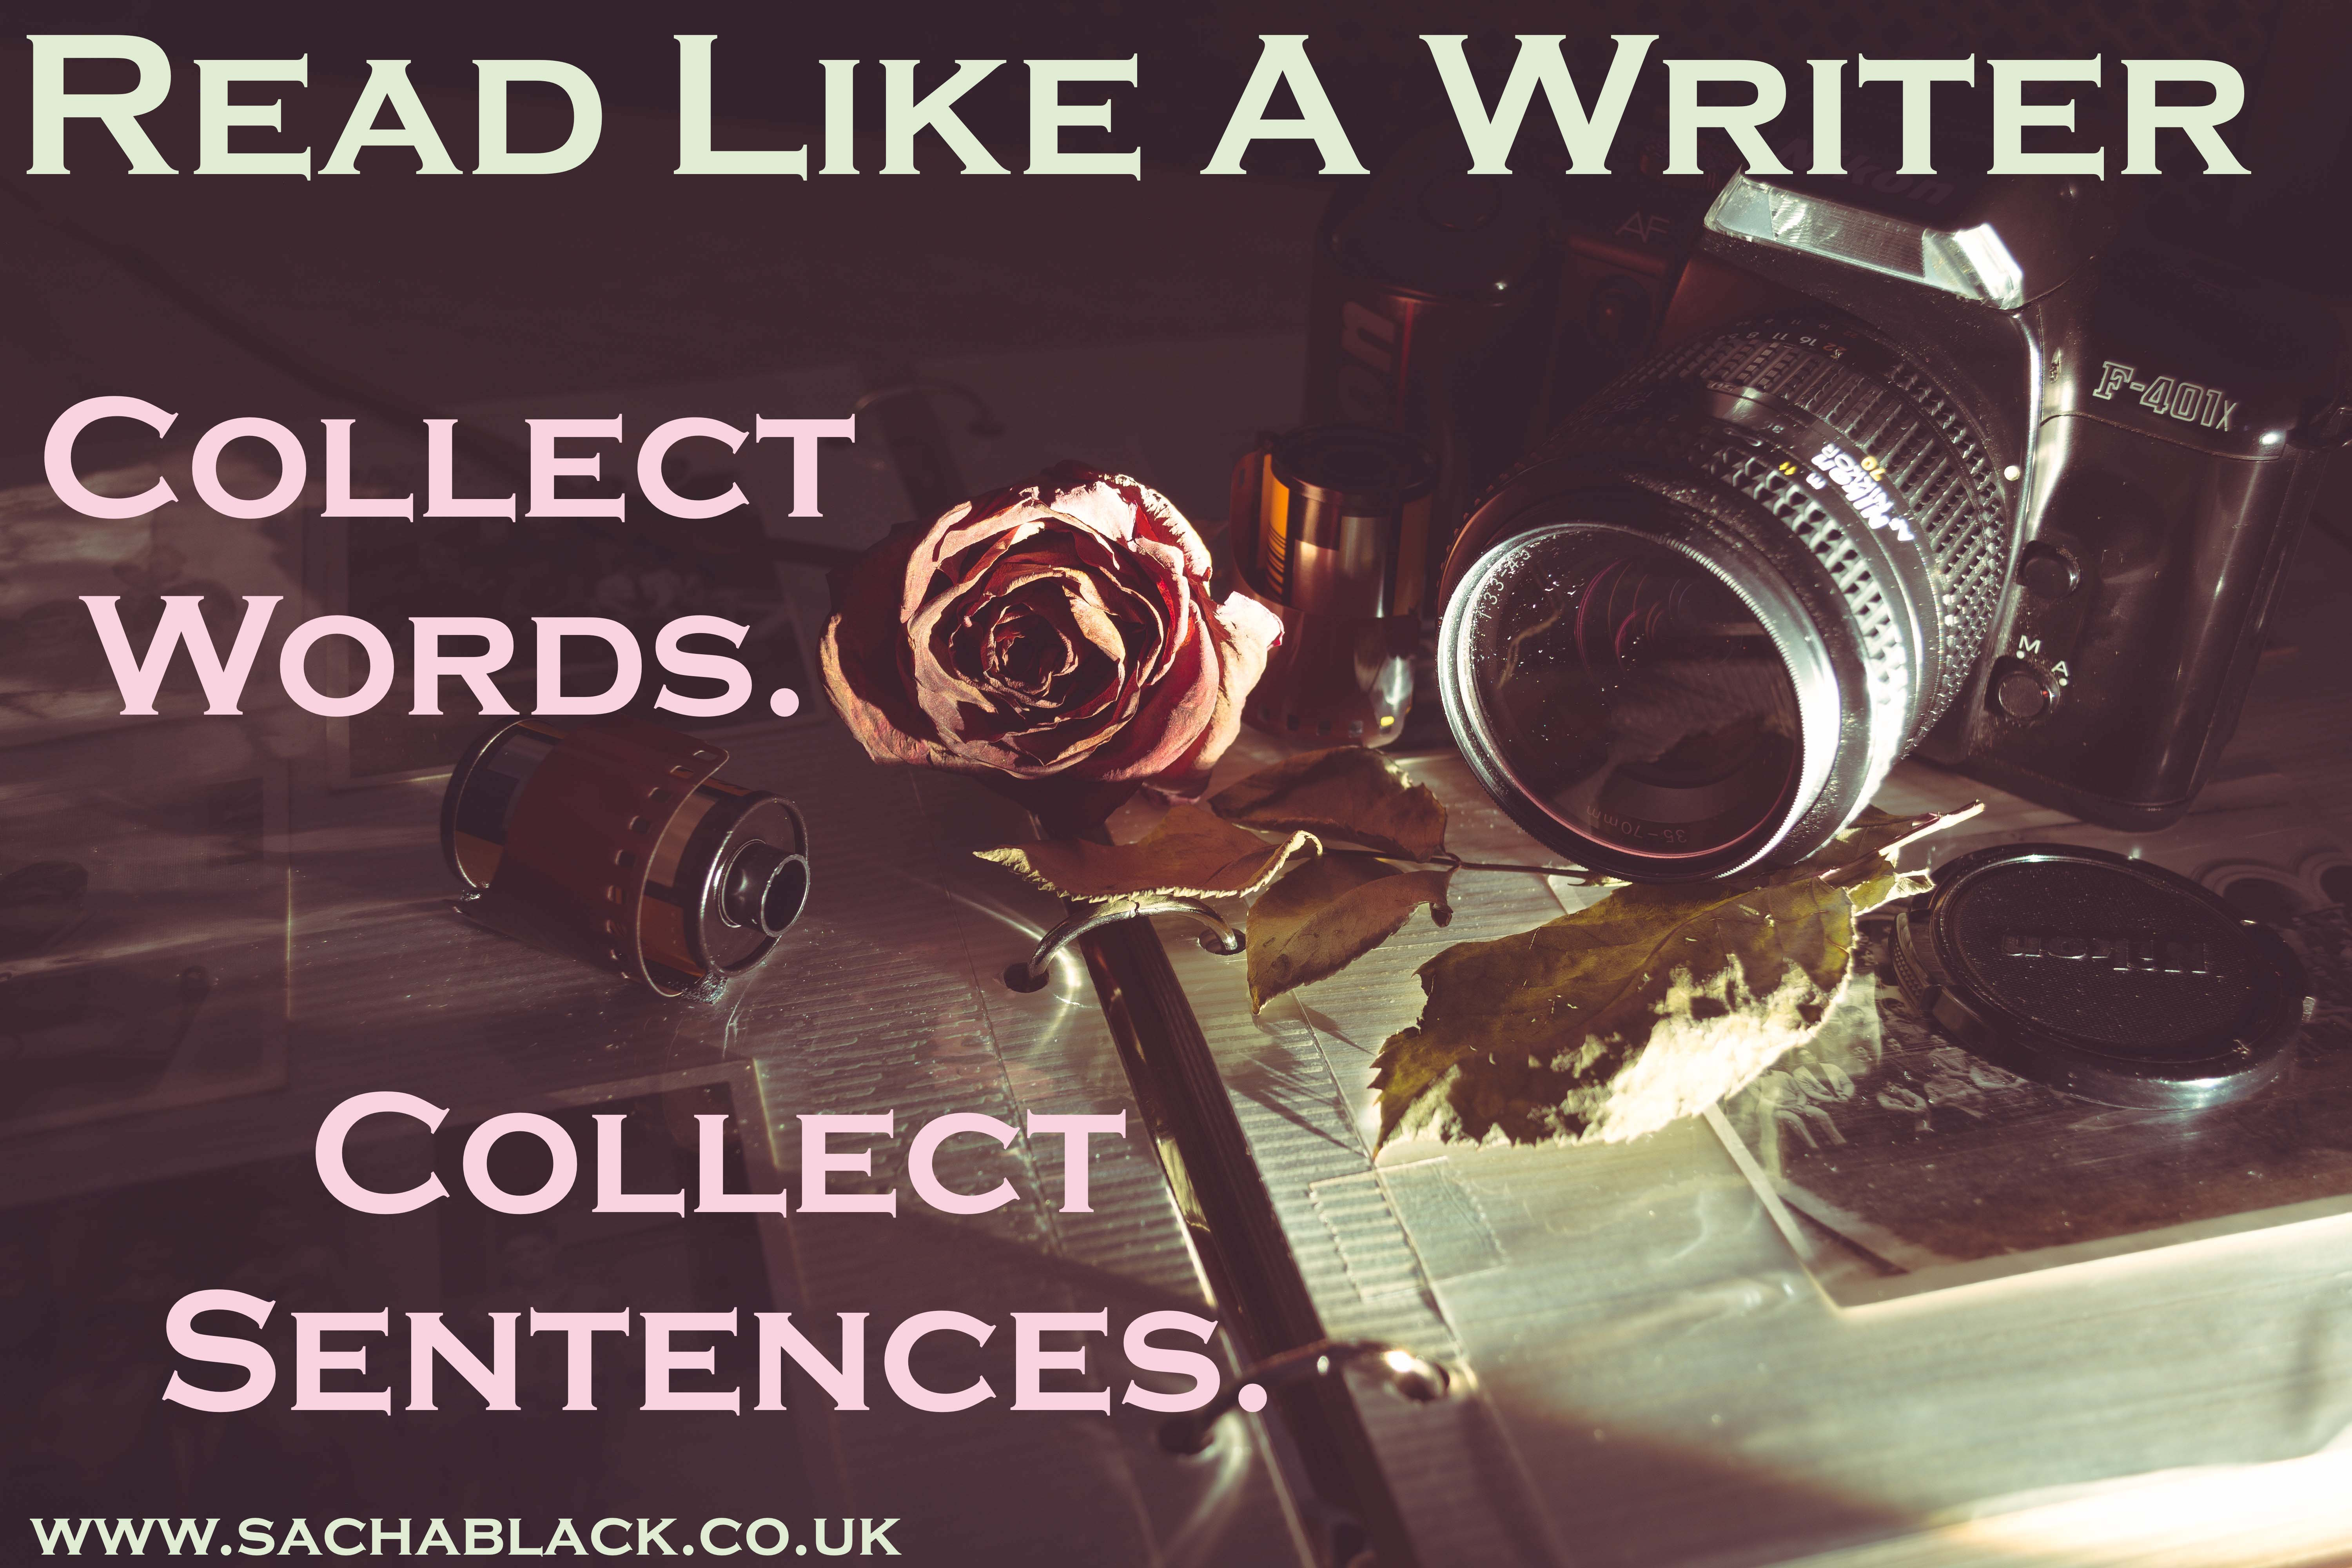 Collect Words, Collect Sentences